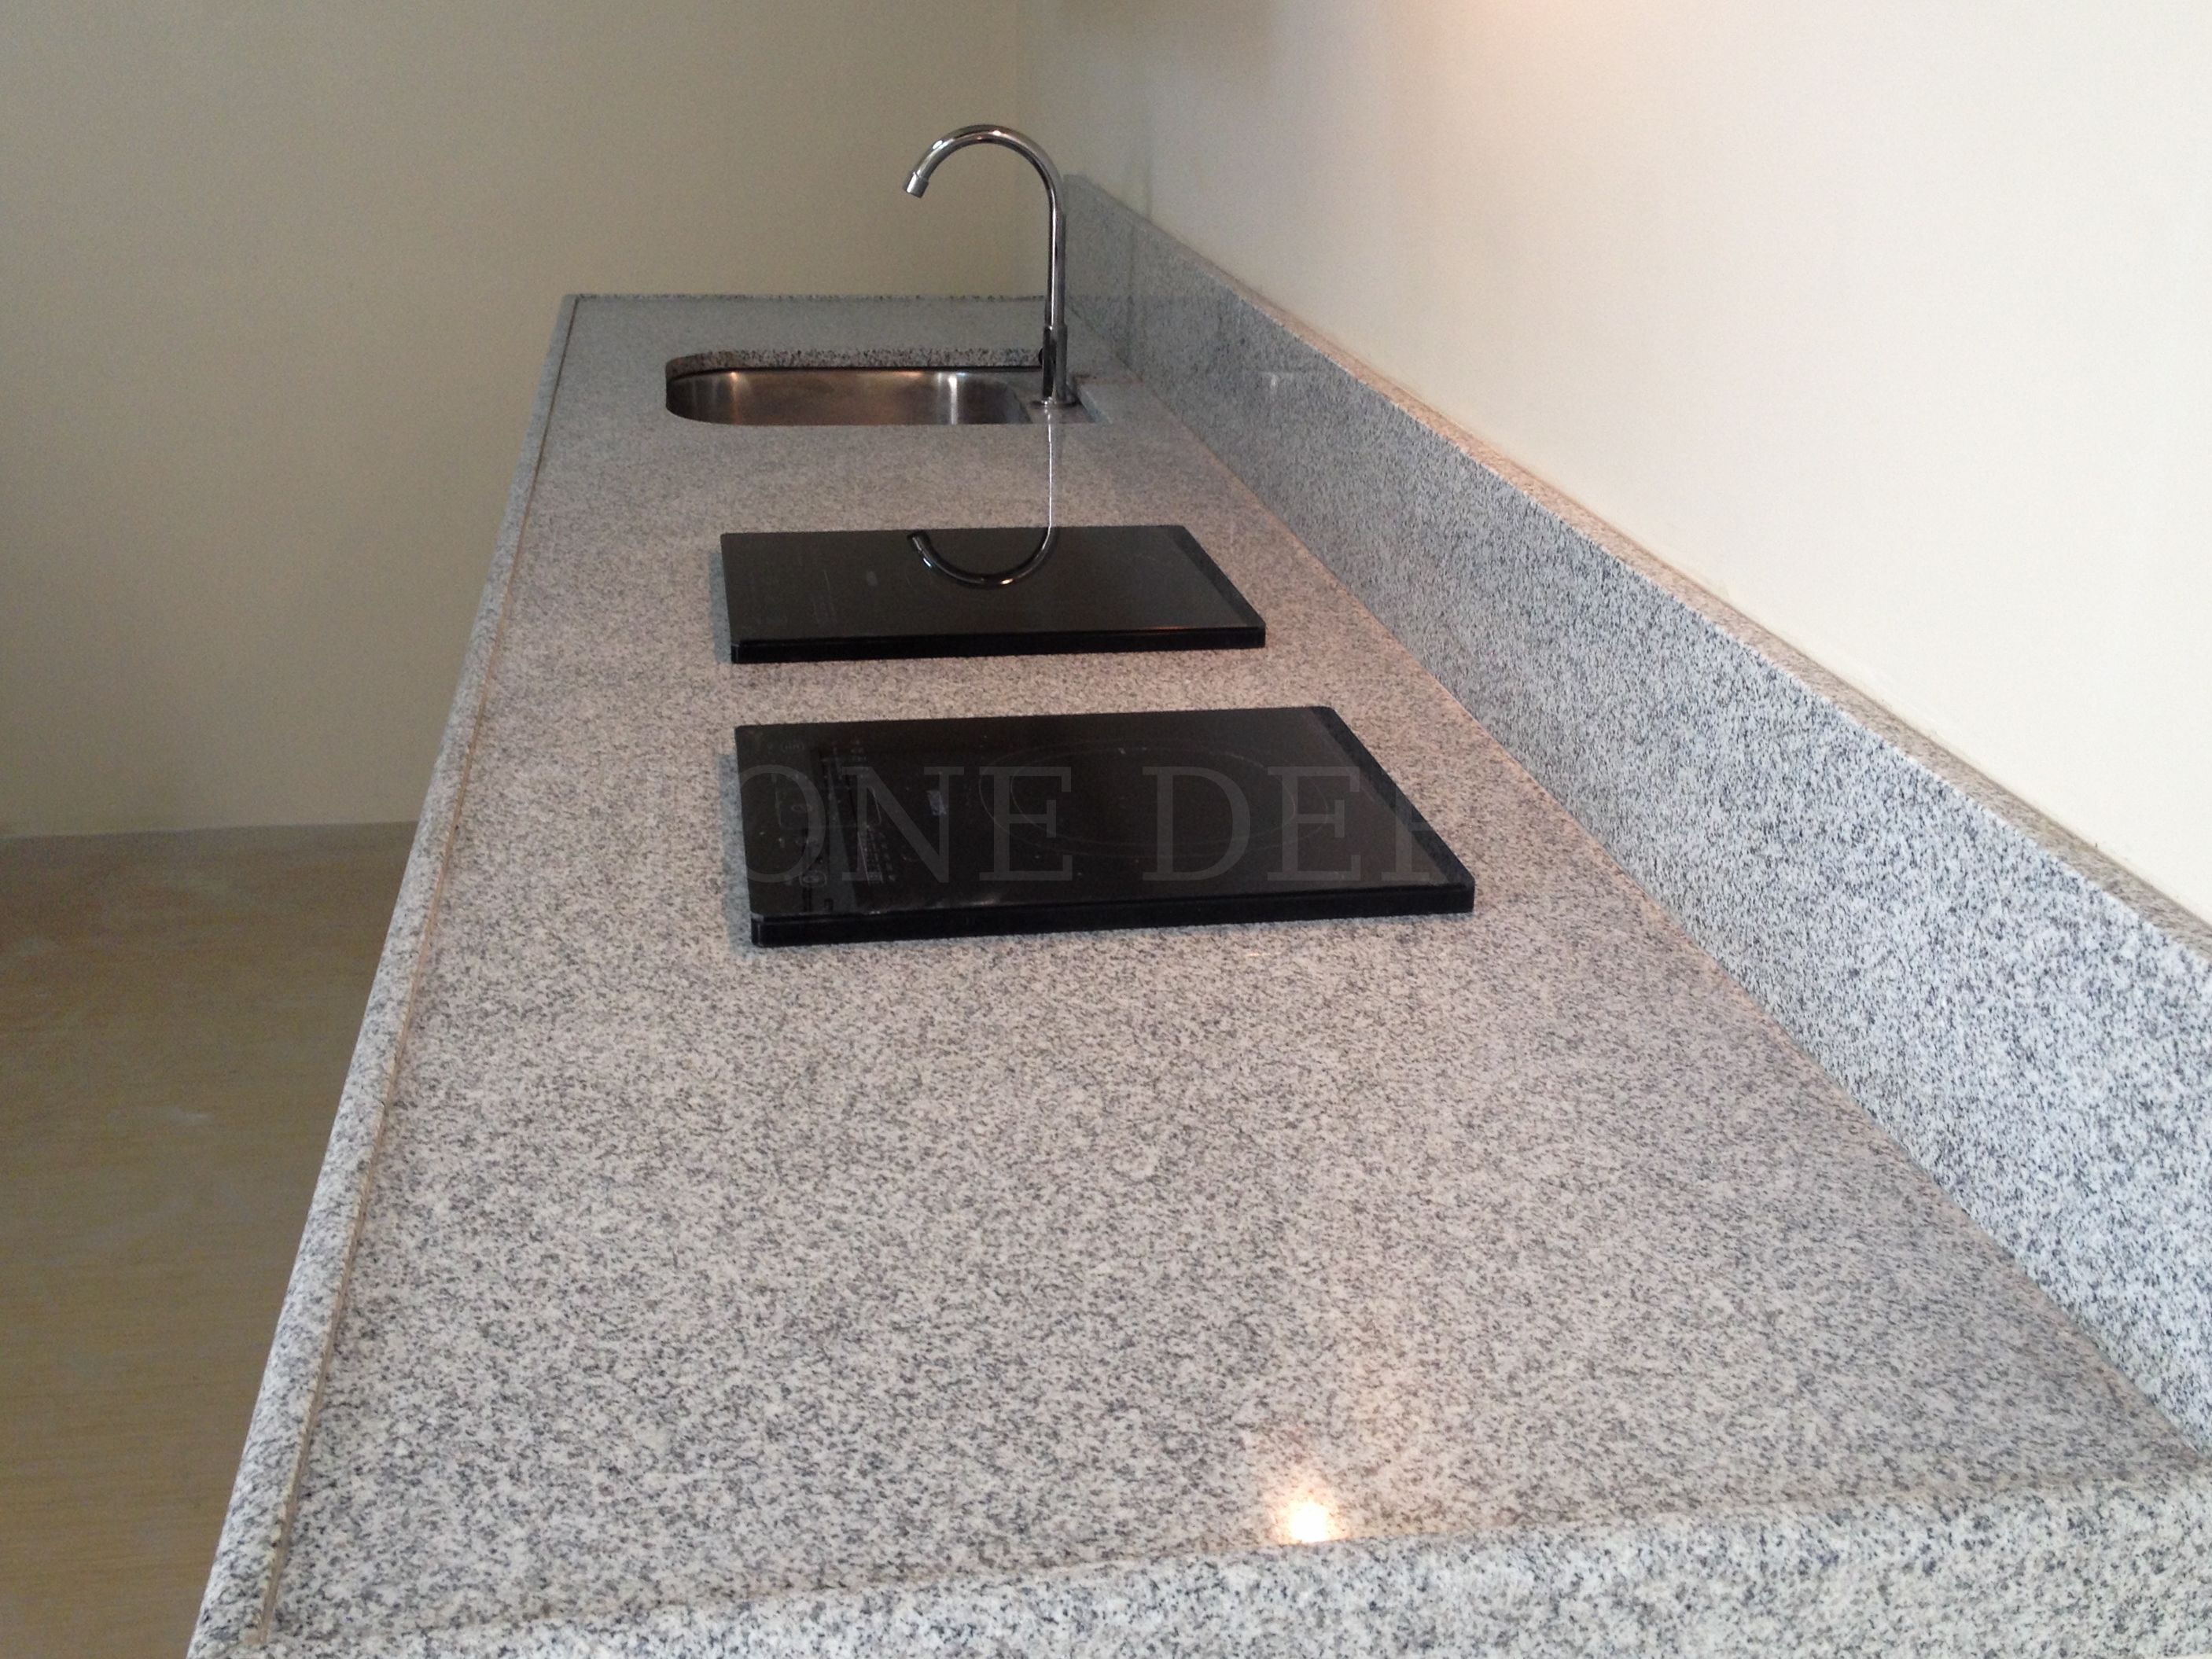 Combining Form And Function The Marine Edge Profile No Drip Edge Is A Great Option To Keep Marble Granite Countertops Granite Edges Kitchen Countertops